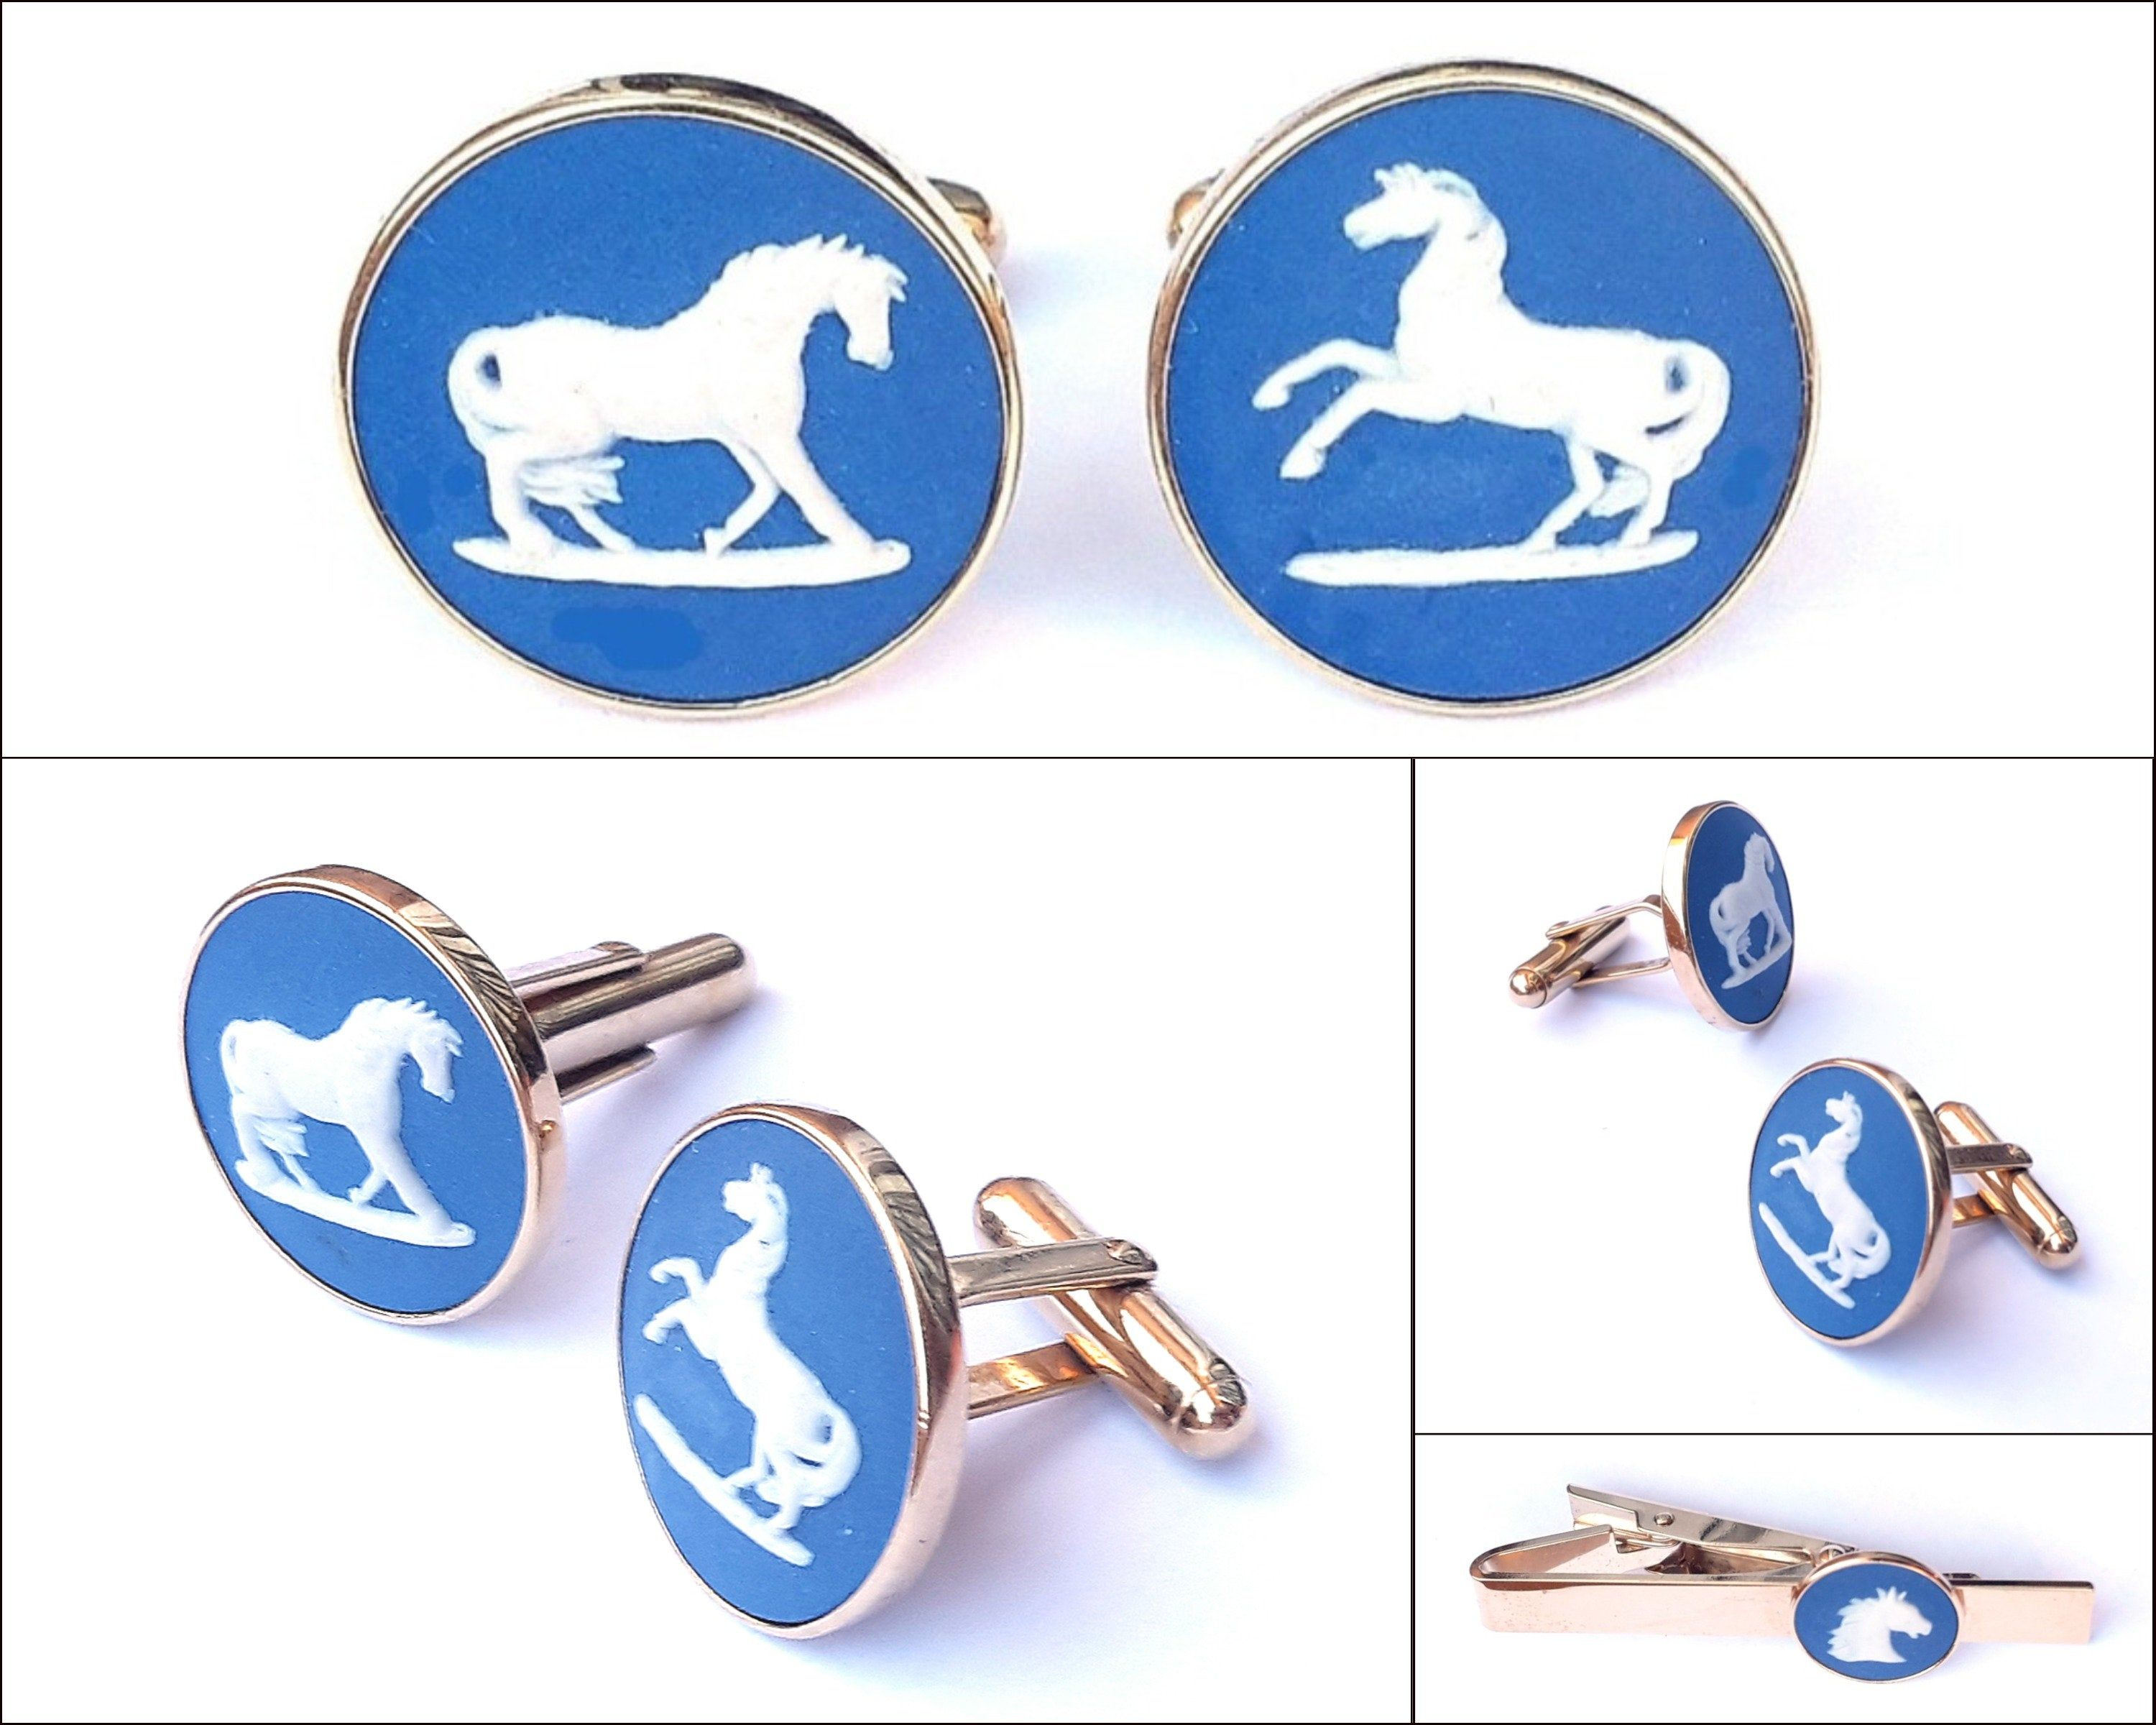 0f10af08d0fd Wedgwood Cameo Cufflinks And Tie Clip - 80s Vintage - Equstrian Horse -  Engraved/Hallmarked